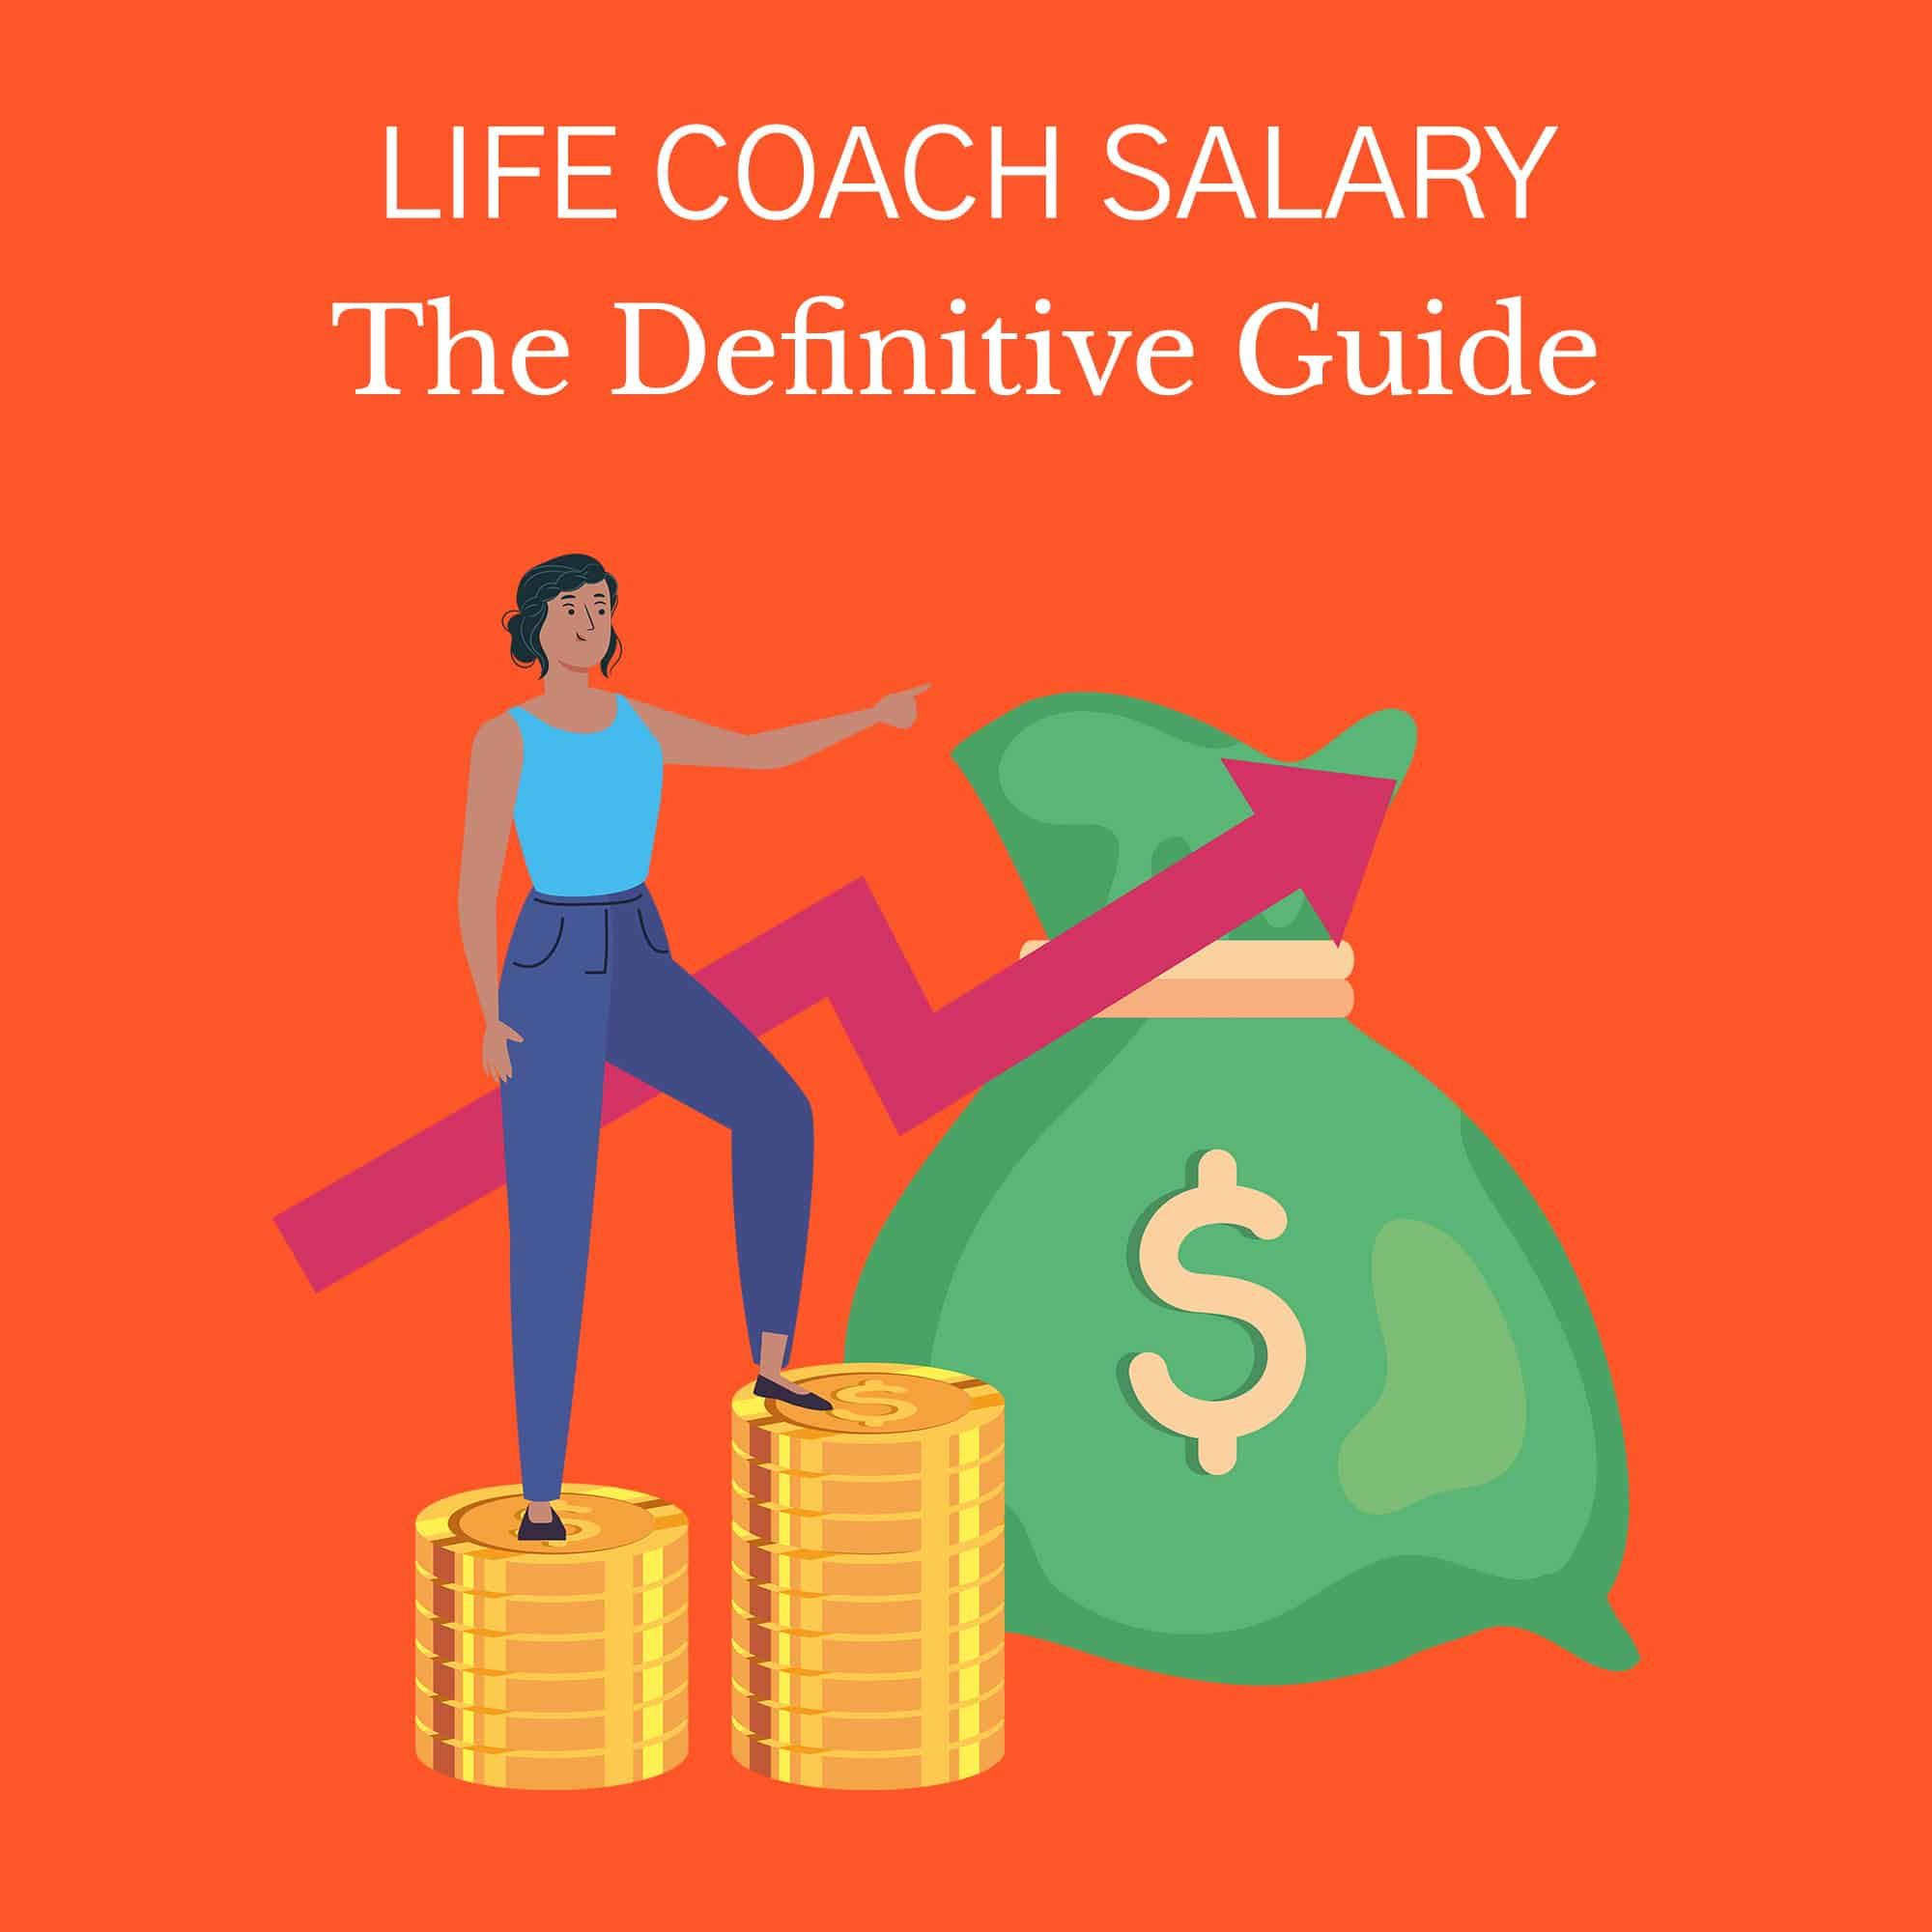 Life Coach Salary: The Definitive Guide